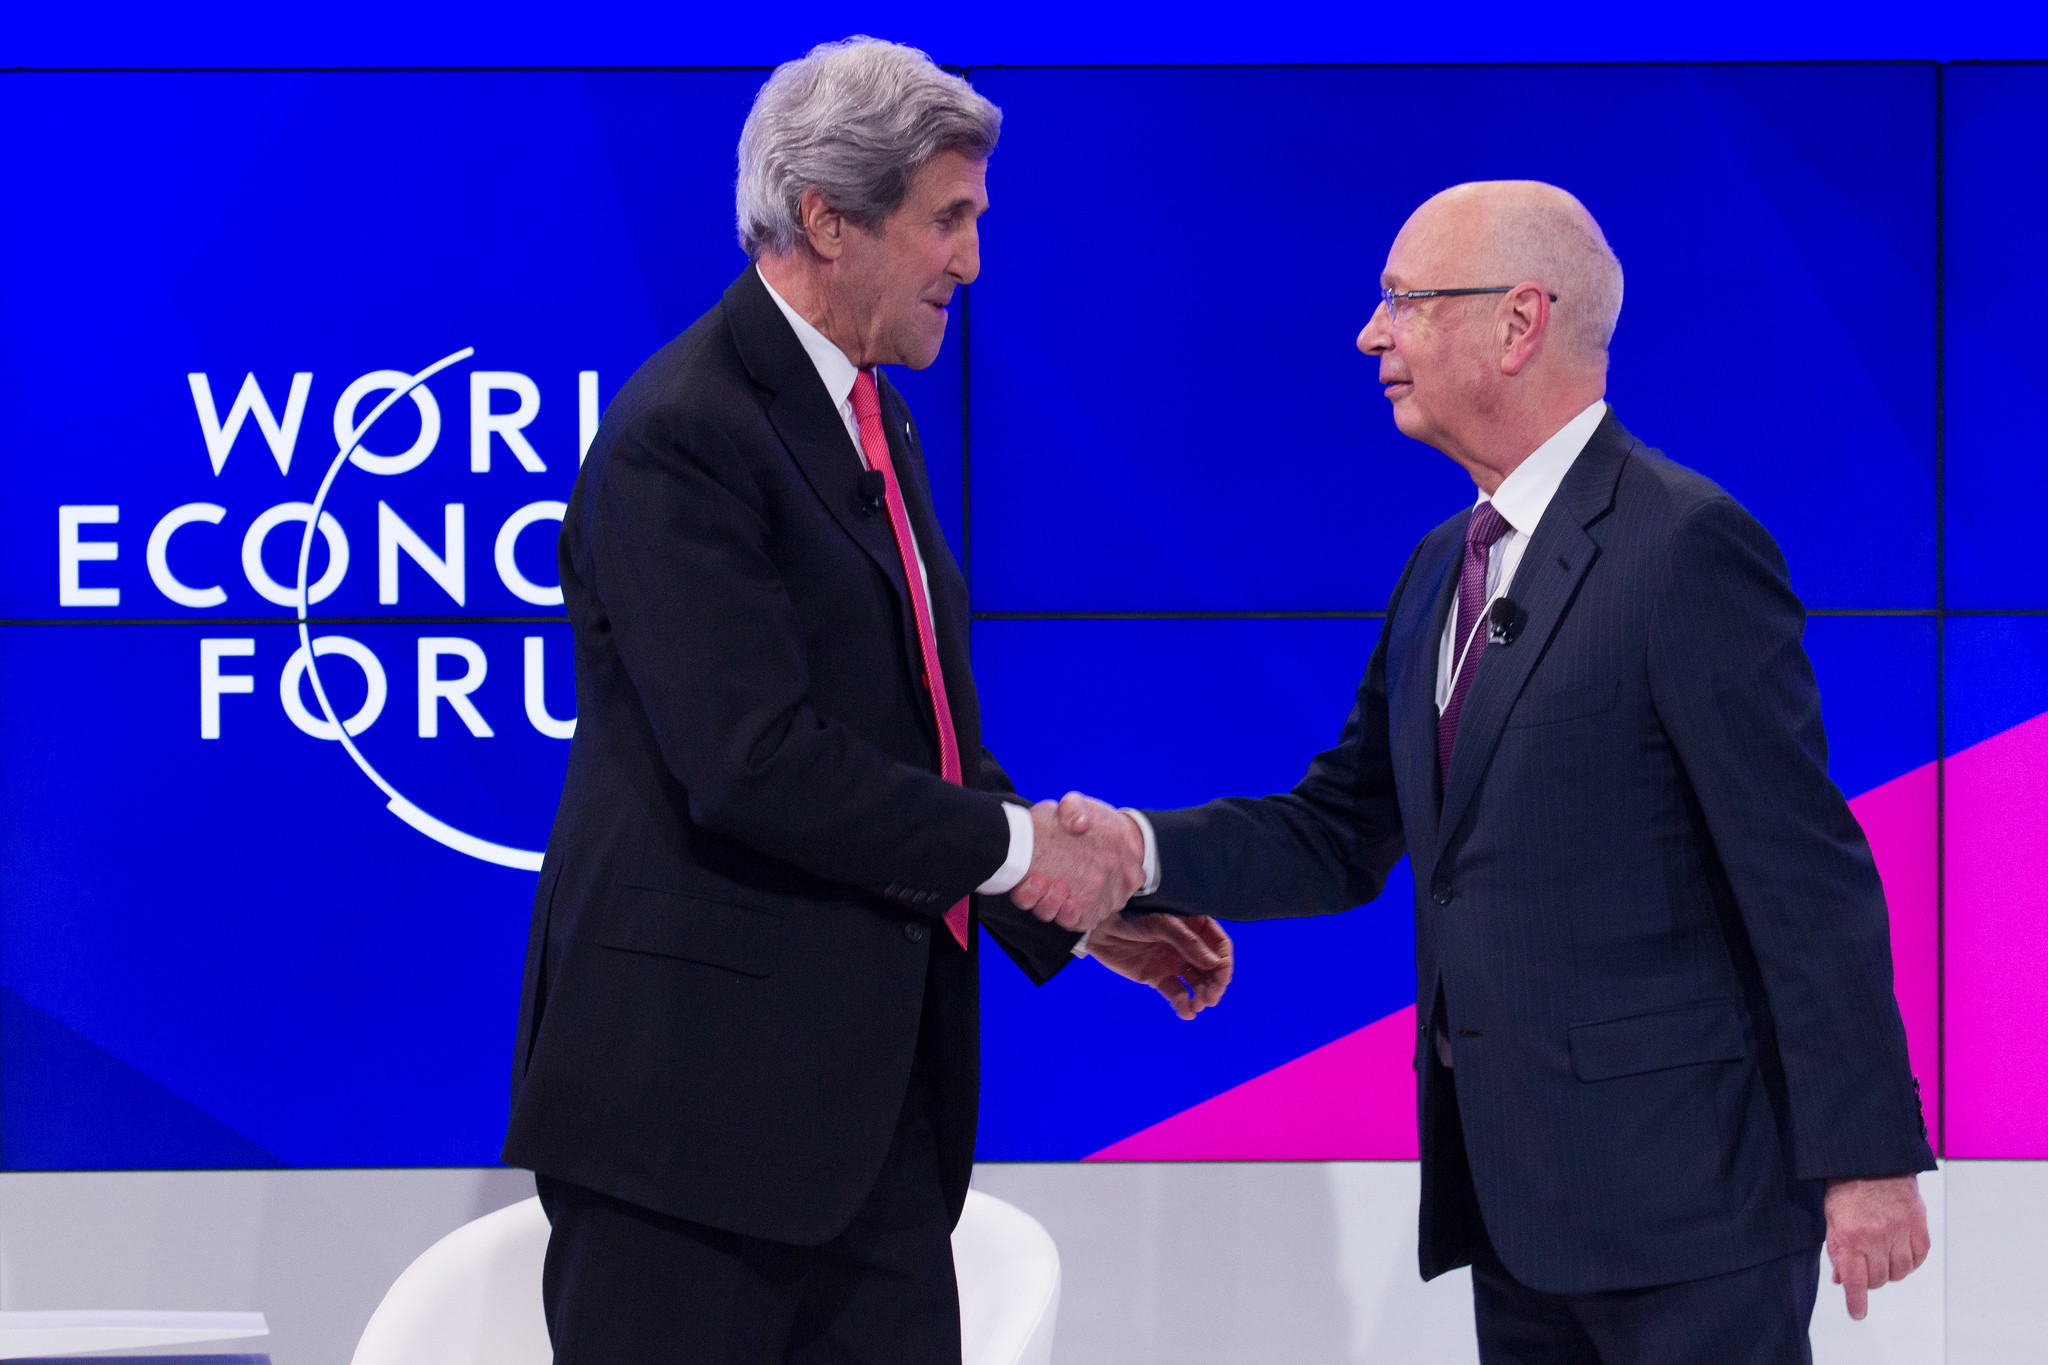 Klaus Schwab, Founder and Executive Chairman of the World Economic Forum, introduces John F. Kerry, US Secretary of State